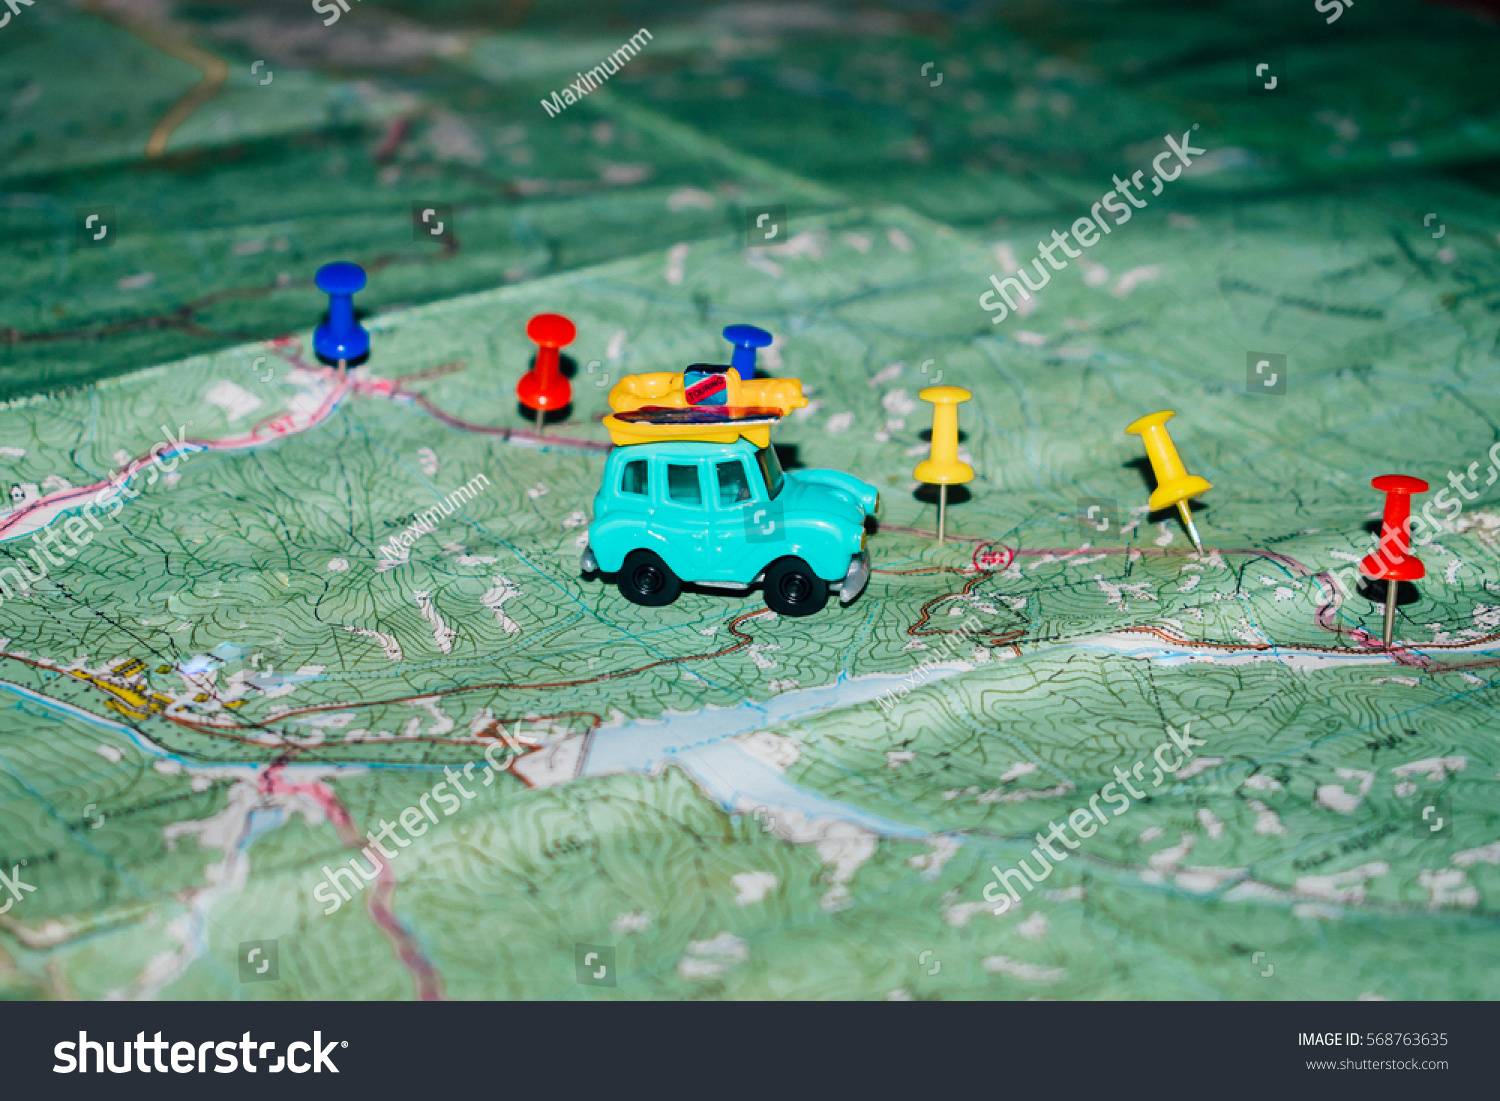 Toy Old Car Rides On Topographic Stock Photo (Royalty Free ...